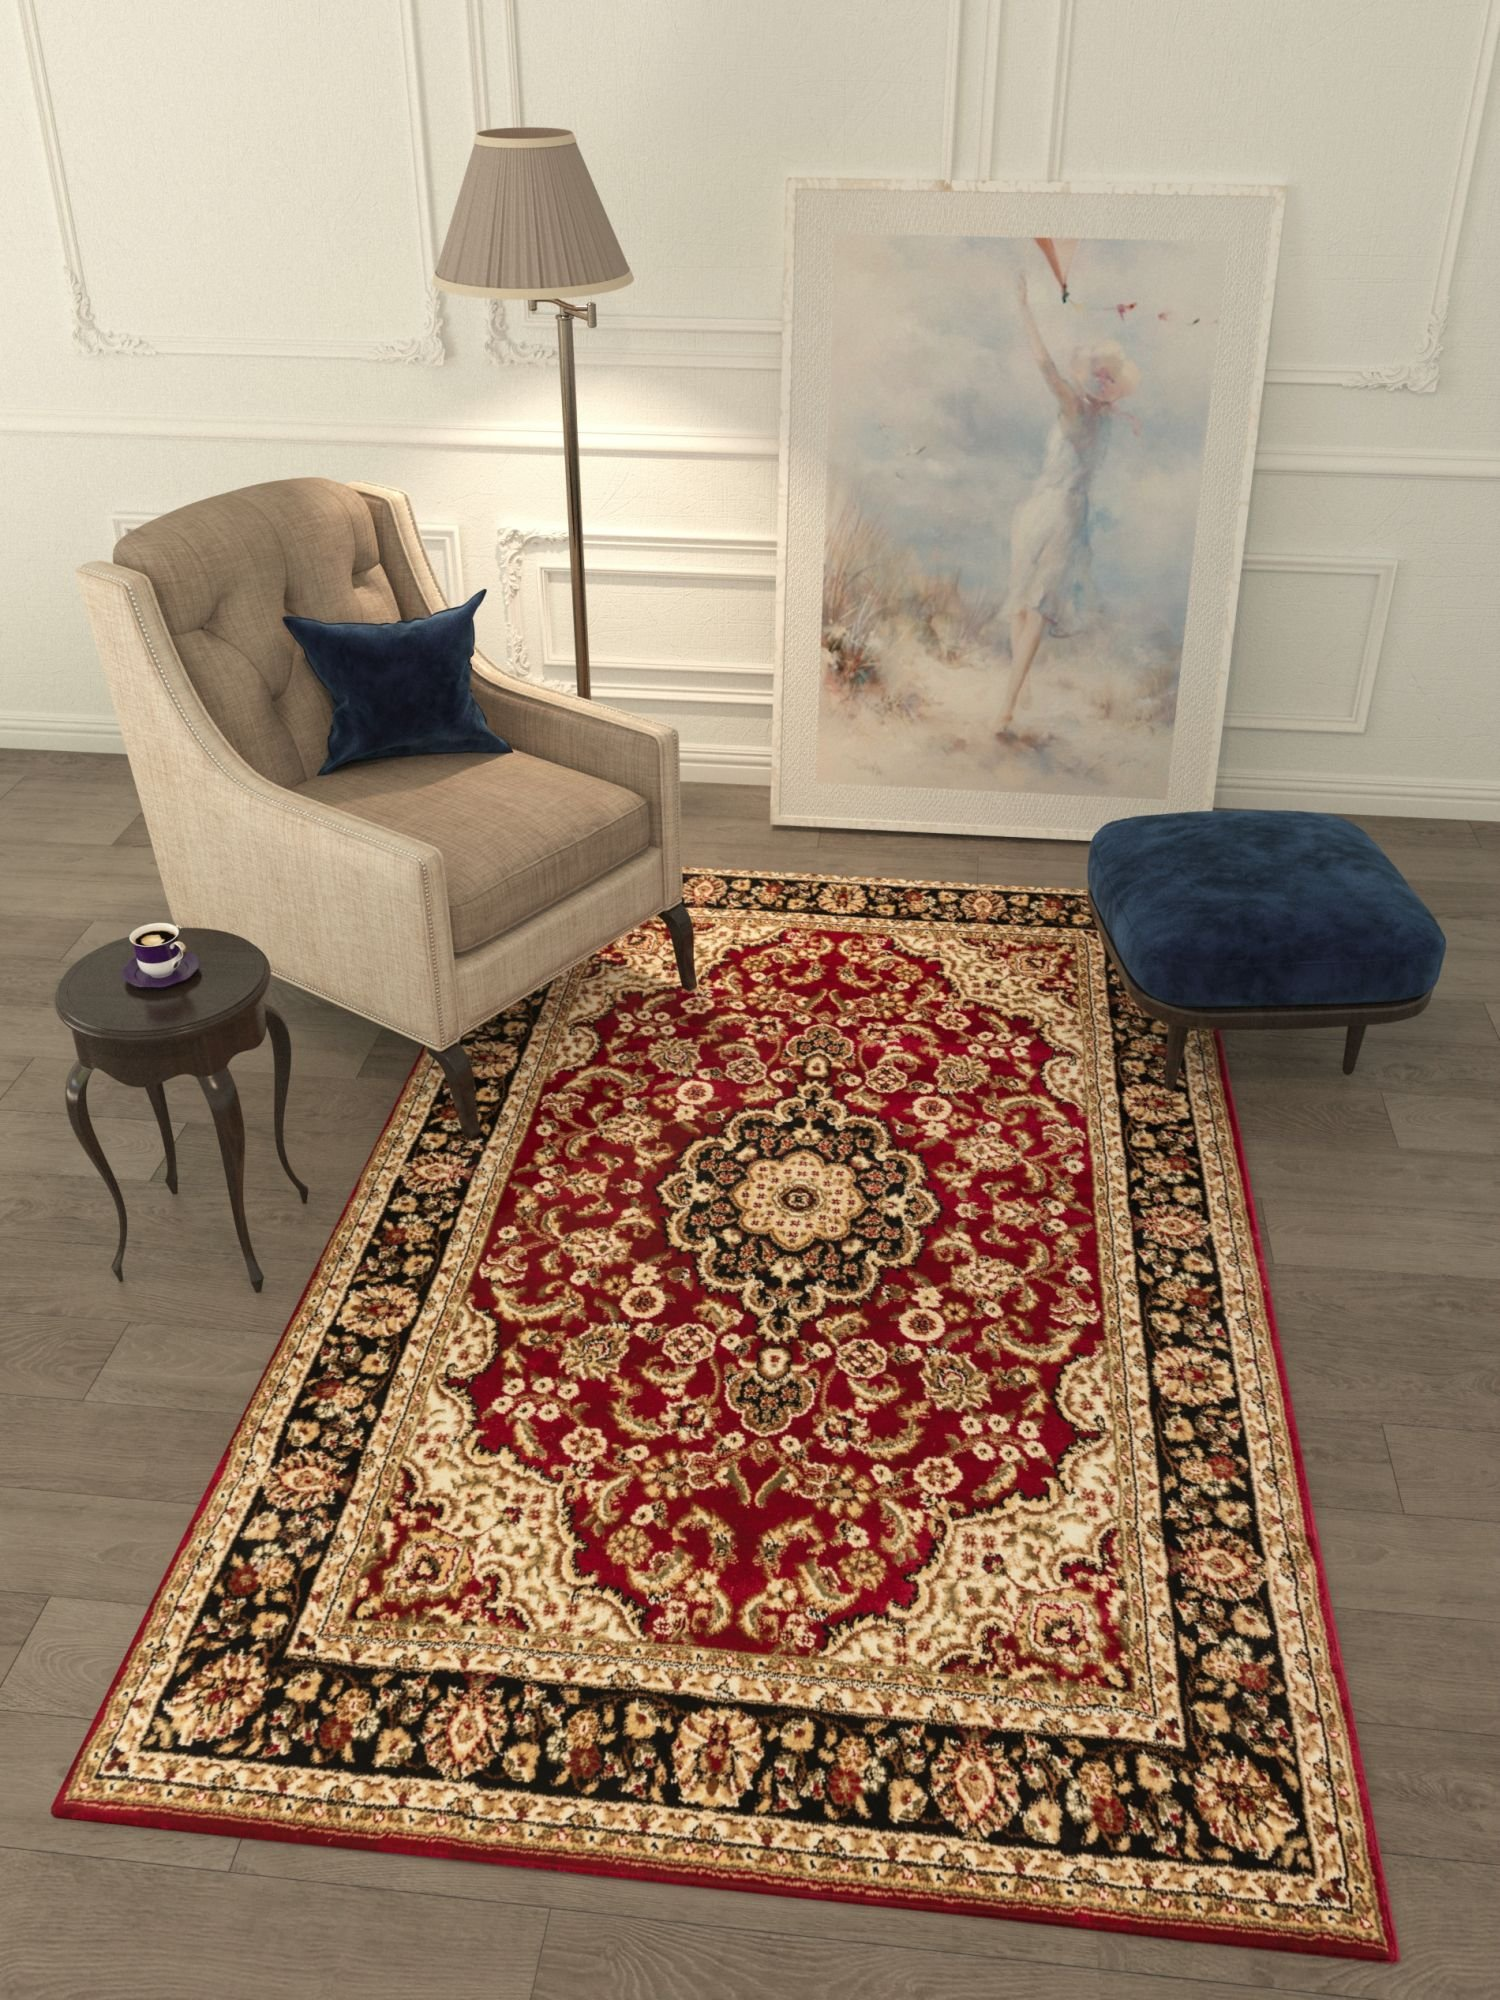 Persian Classic Red Burgundy 6'7'' x 9'6'' Area Rug Oriental Floral Motif Detailed Classic Pattern Antique Living Dining Room Bedroom Hallway Office Carpet Easy Clean Traditional Soft Plush Quality